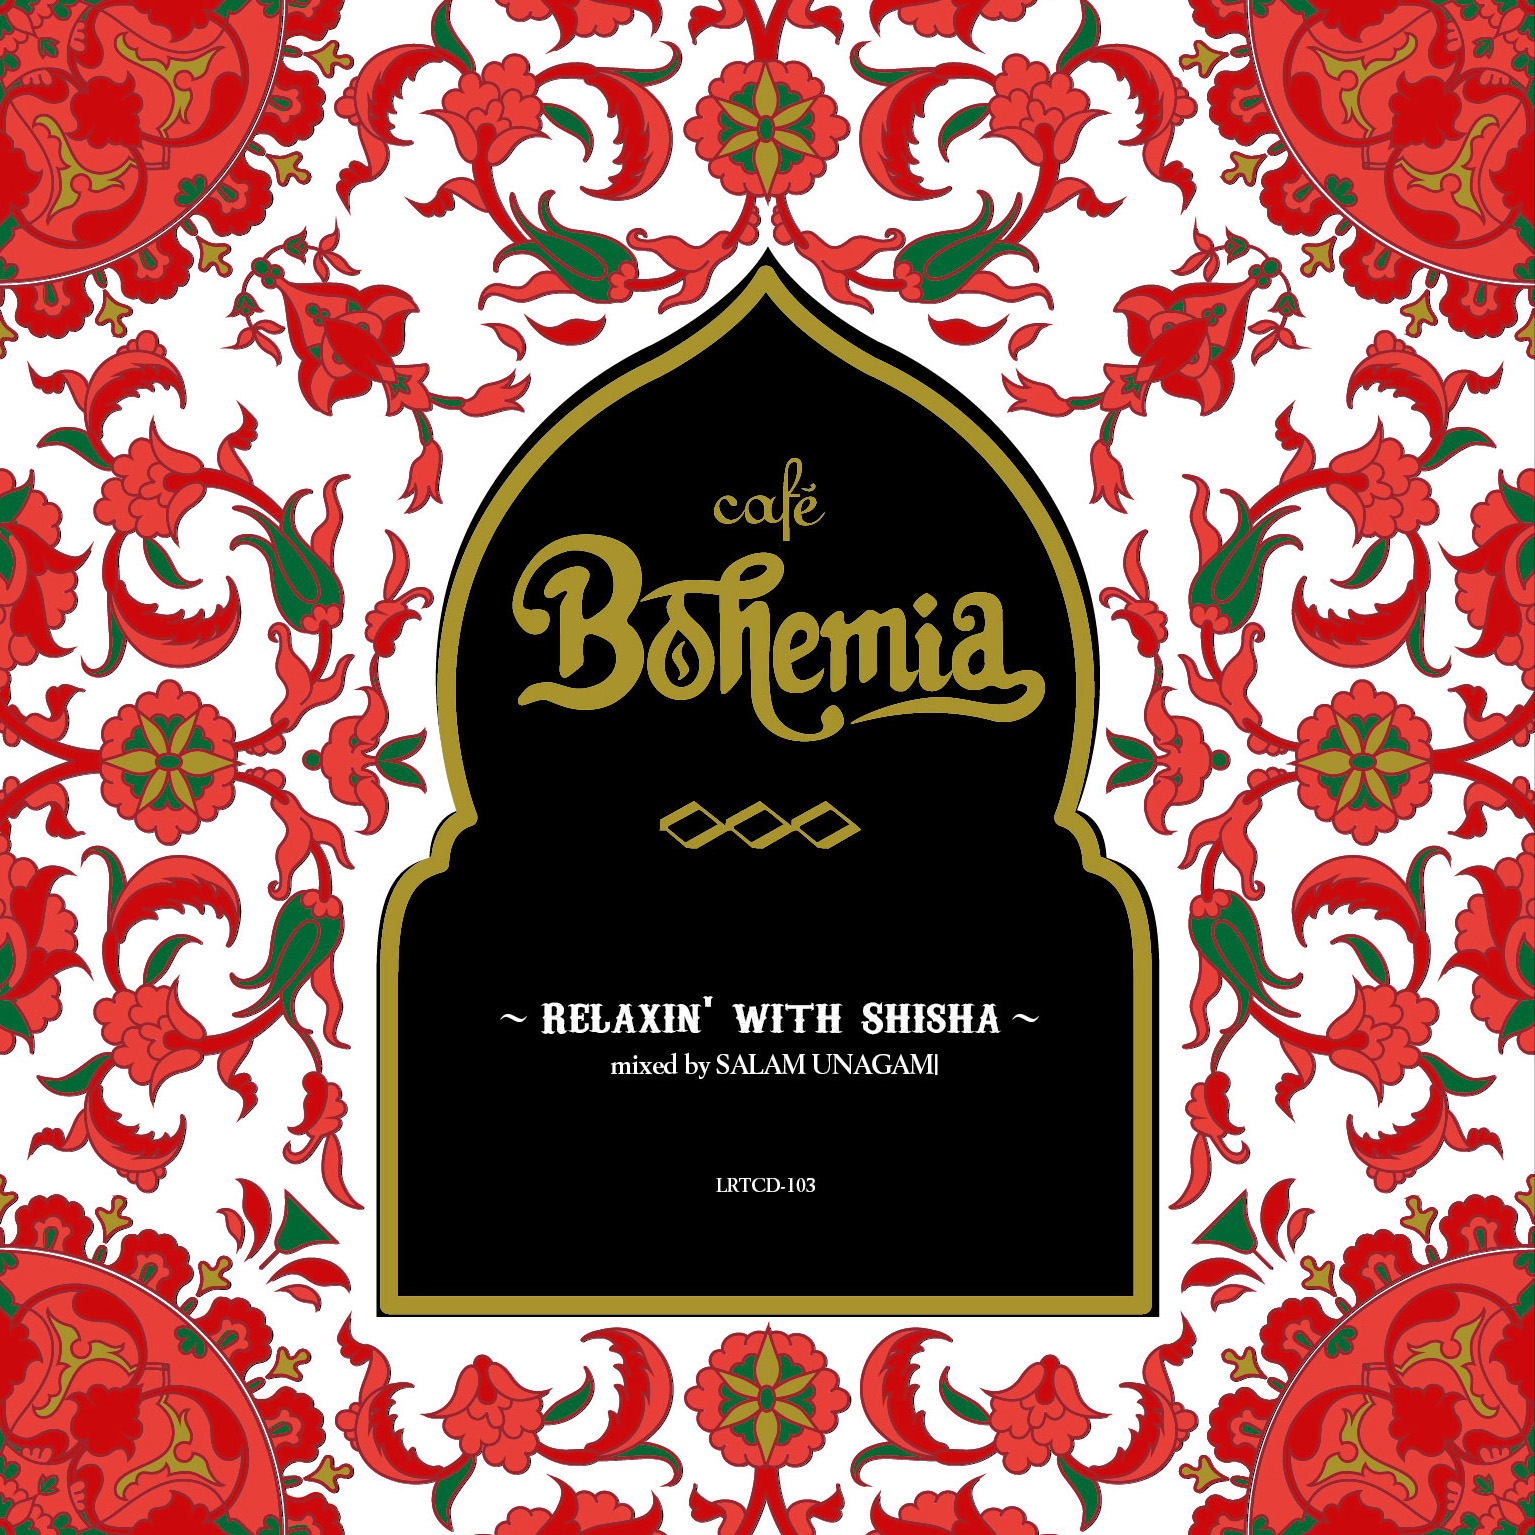 アルバム『Café Bohemia Relaxin'With Shisha  mixed byサラーム海上』